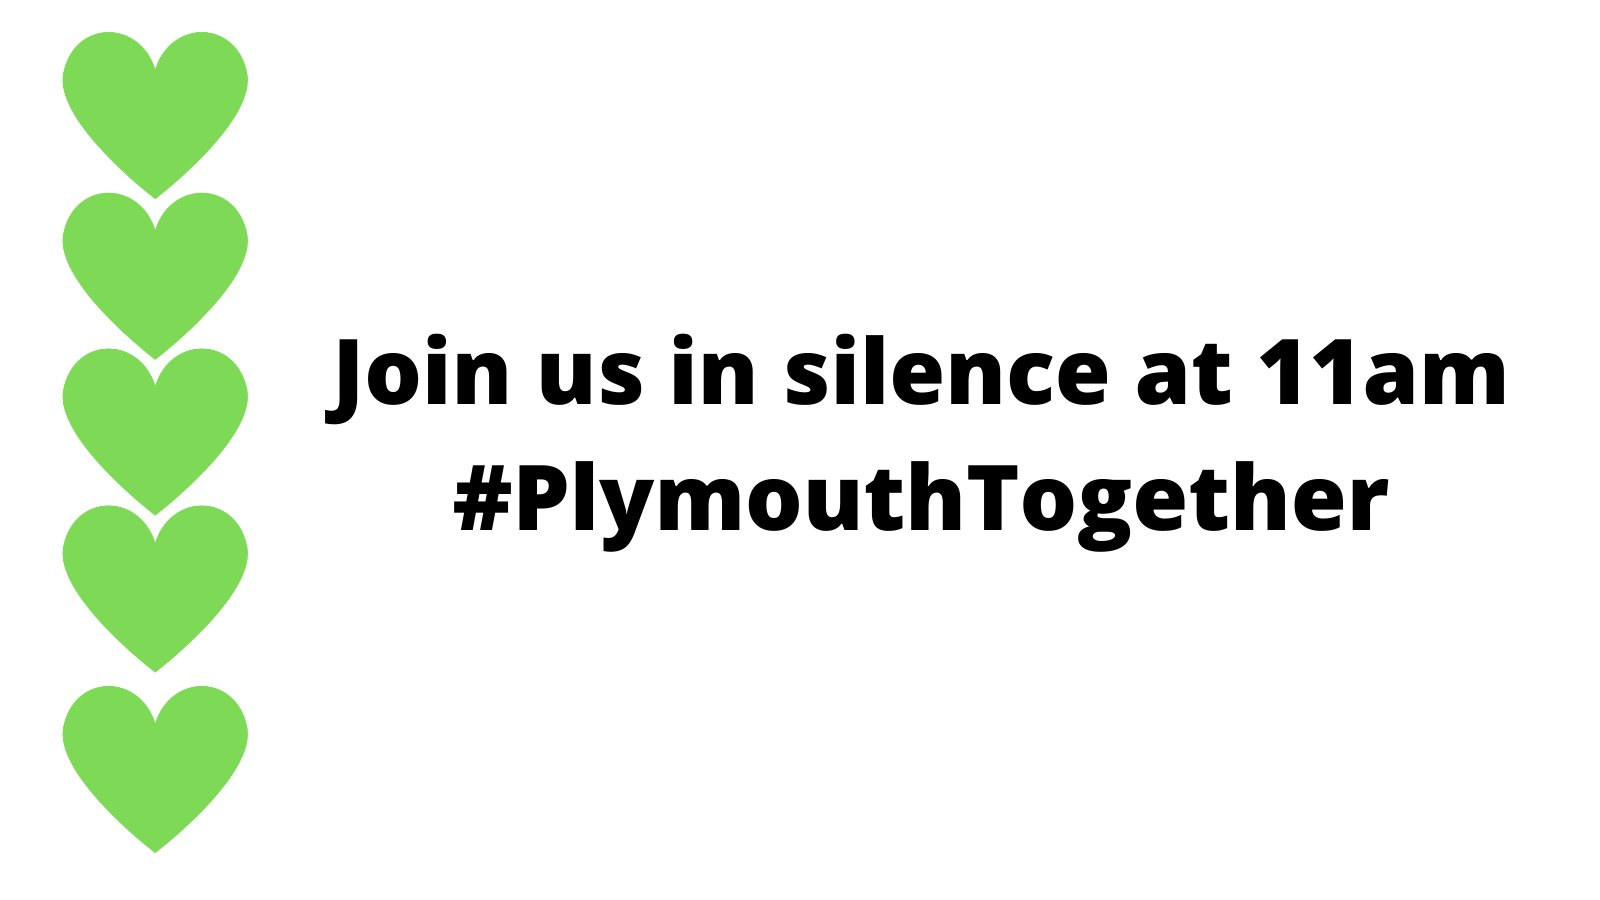 Details for a minute's silence with Plymouth City Council